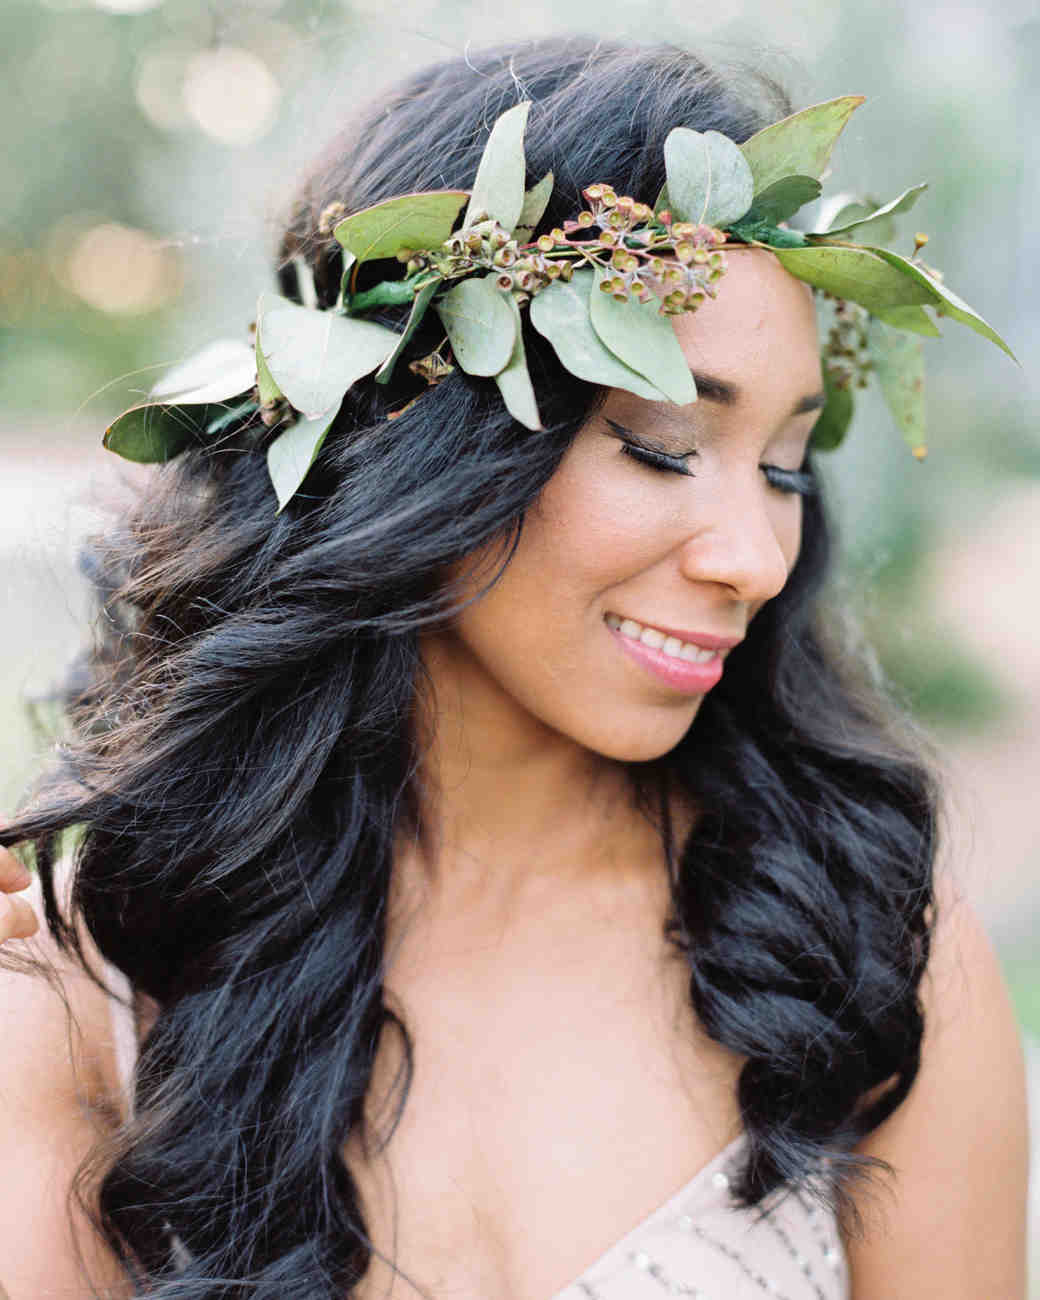 greenery crowns michelle boyd photography